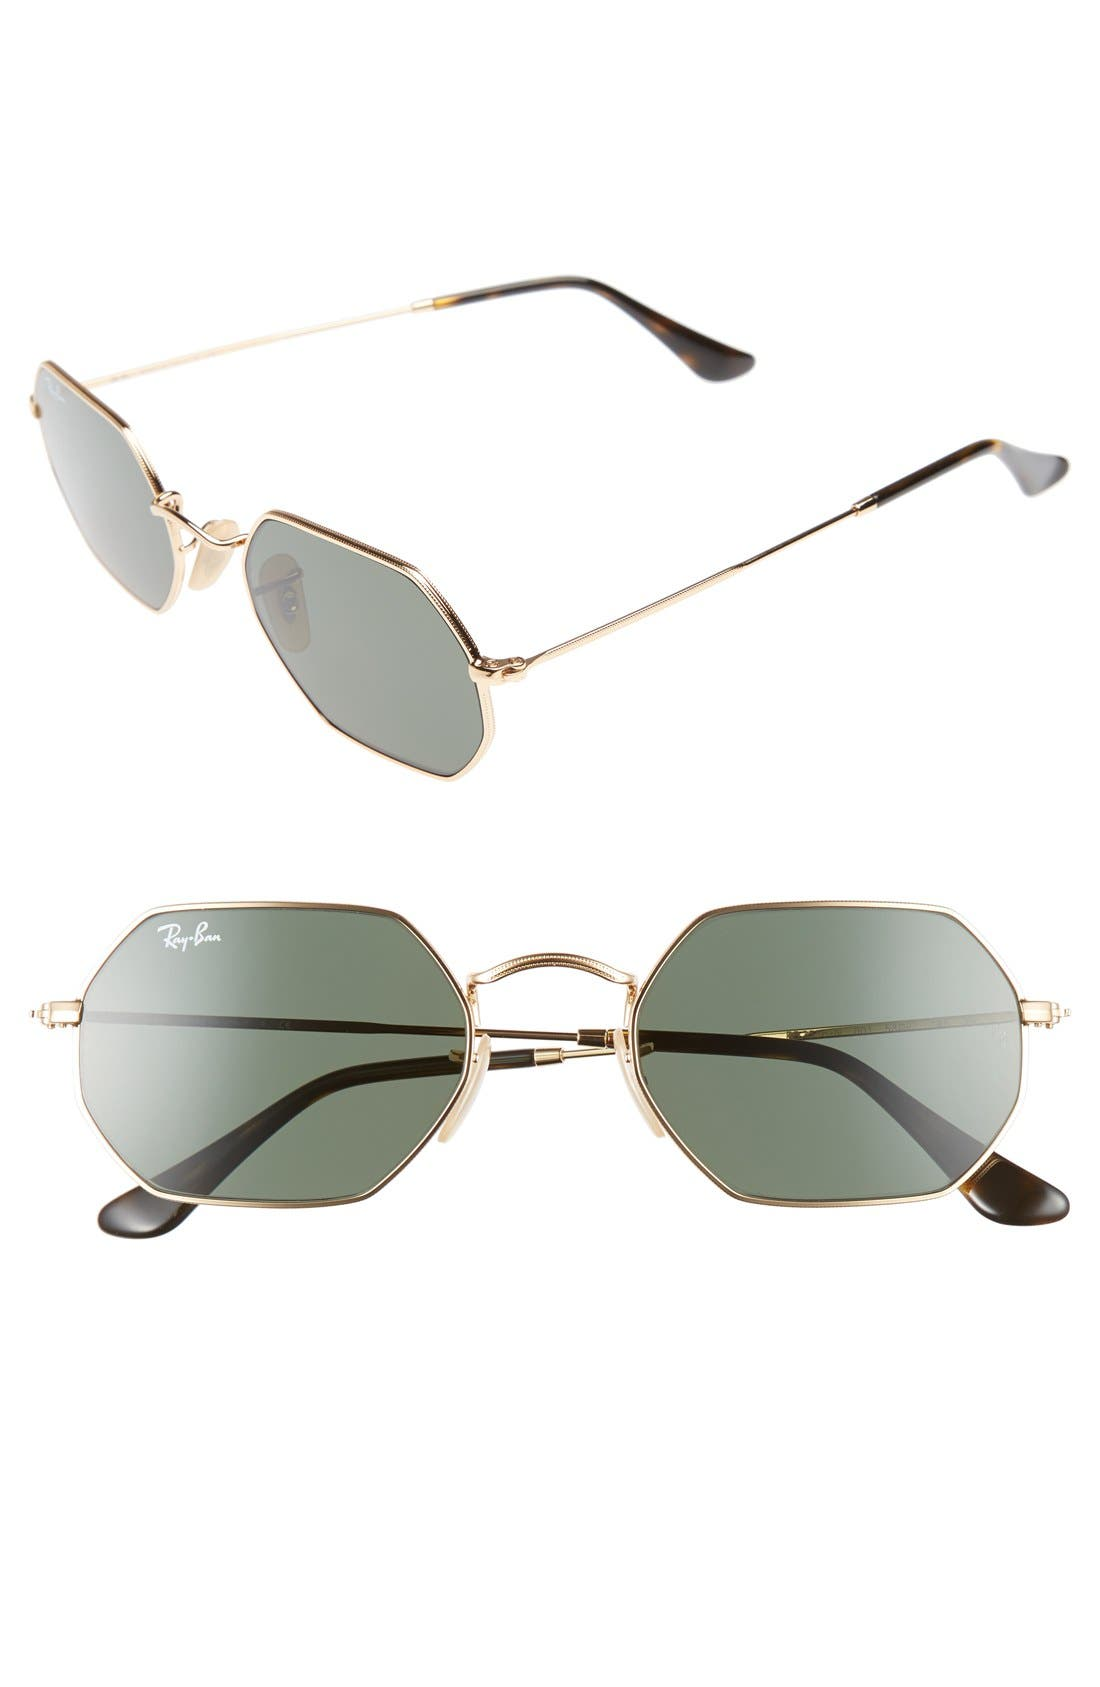 Icons 53mm Sunglasses,                         Main,                         color, Gold/ Green